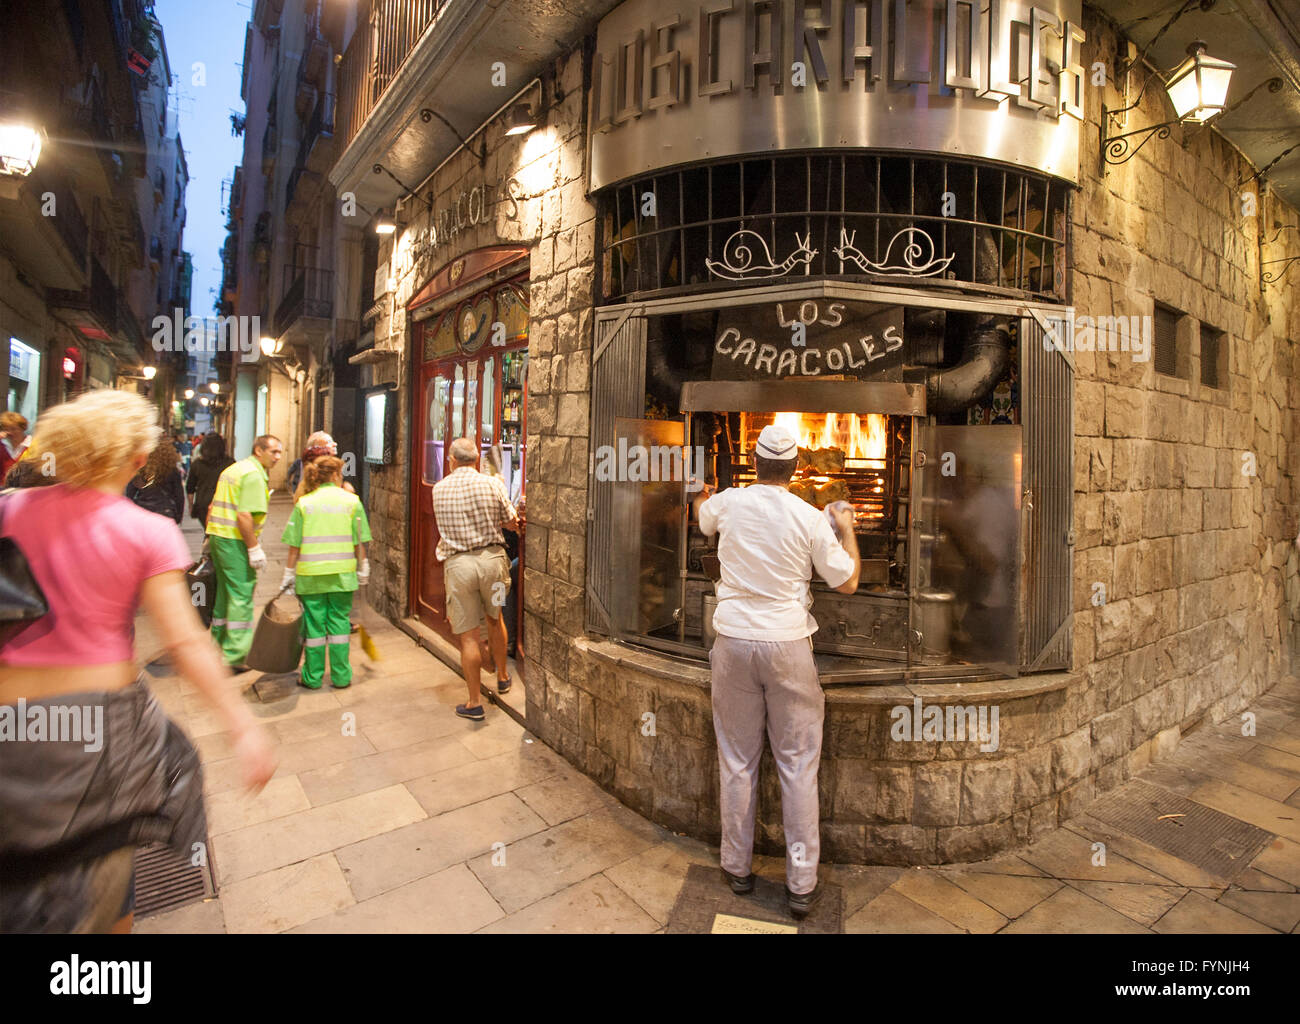 Roasting chickens, Los Caracoles traditional Restaurant in historic center, Barri Gottic, - Stock Image